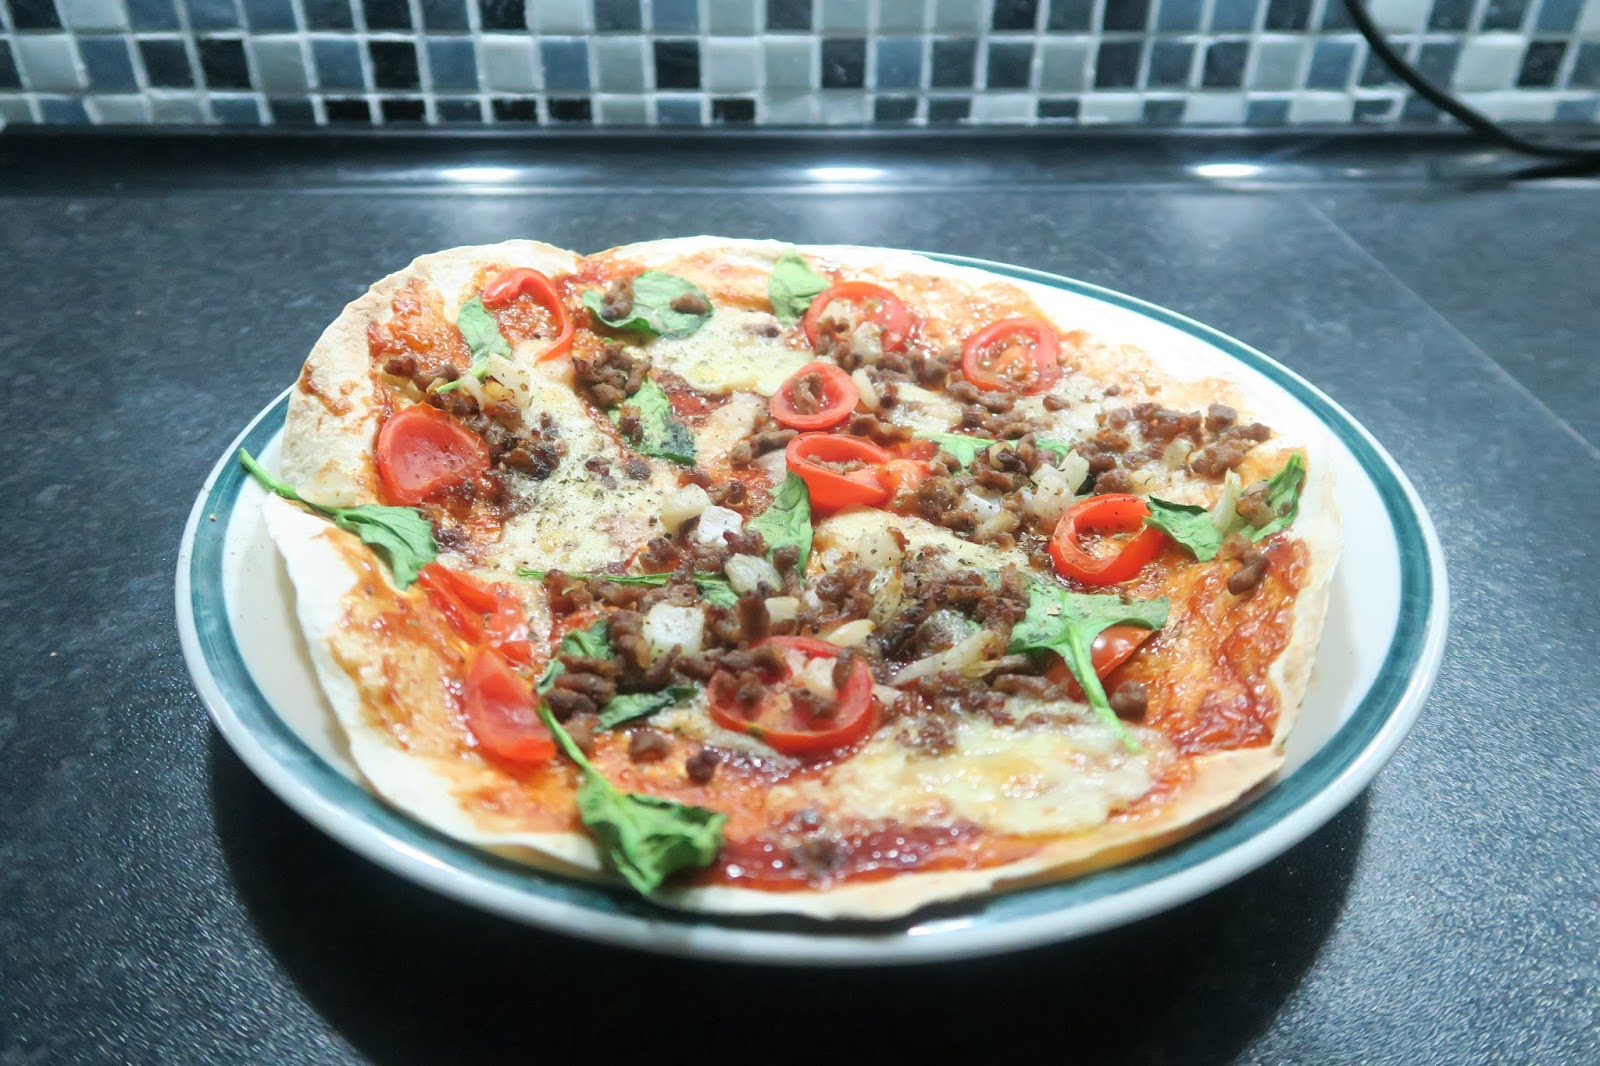 joe wicks, get lean in 15 minutes, tortilla pizza, how to, best tortilla pizza recipes, healthy dinner options, healthy pizza, losing weight, diet menu, spinach, tomatoes, how to lose weight